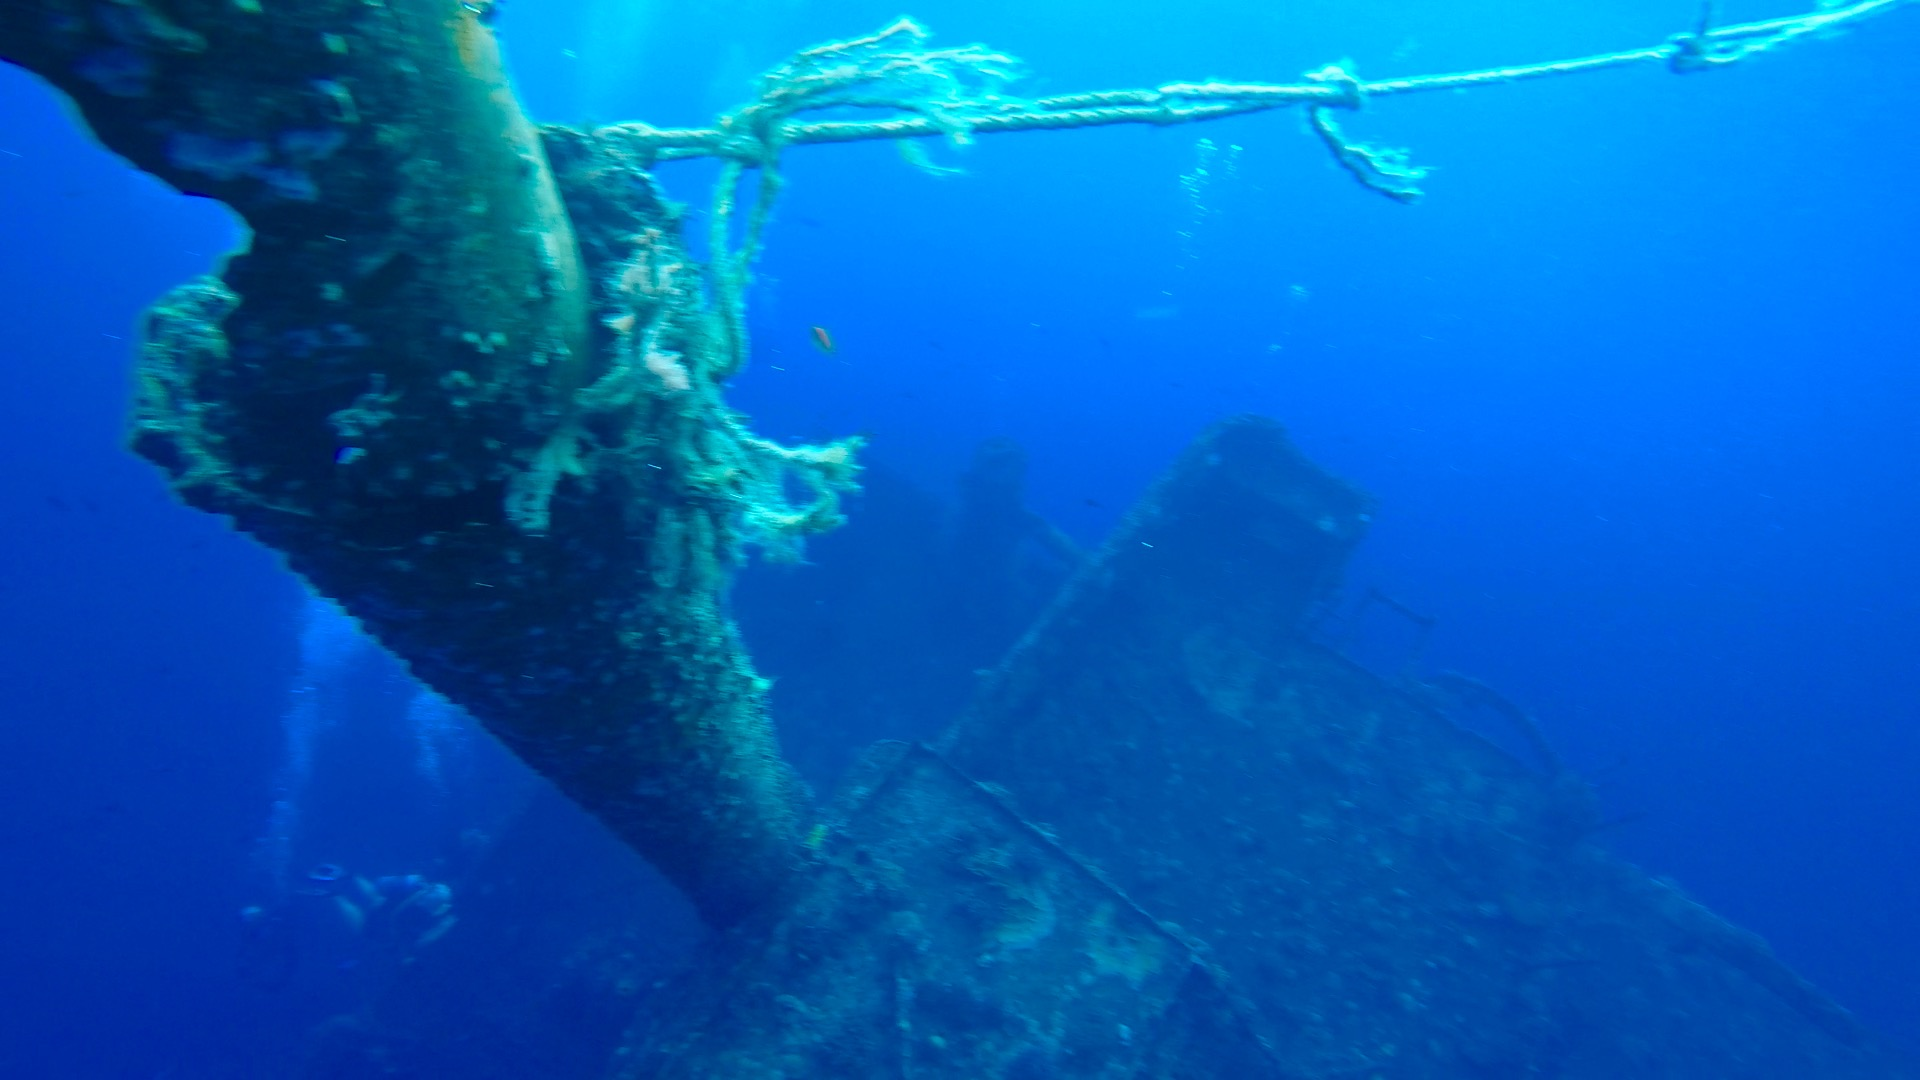 7 Days Sailing And Diving The Red Sea - Mast In The Deep